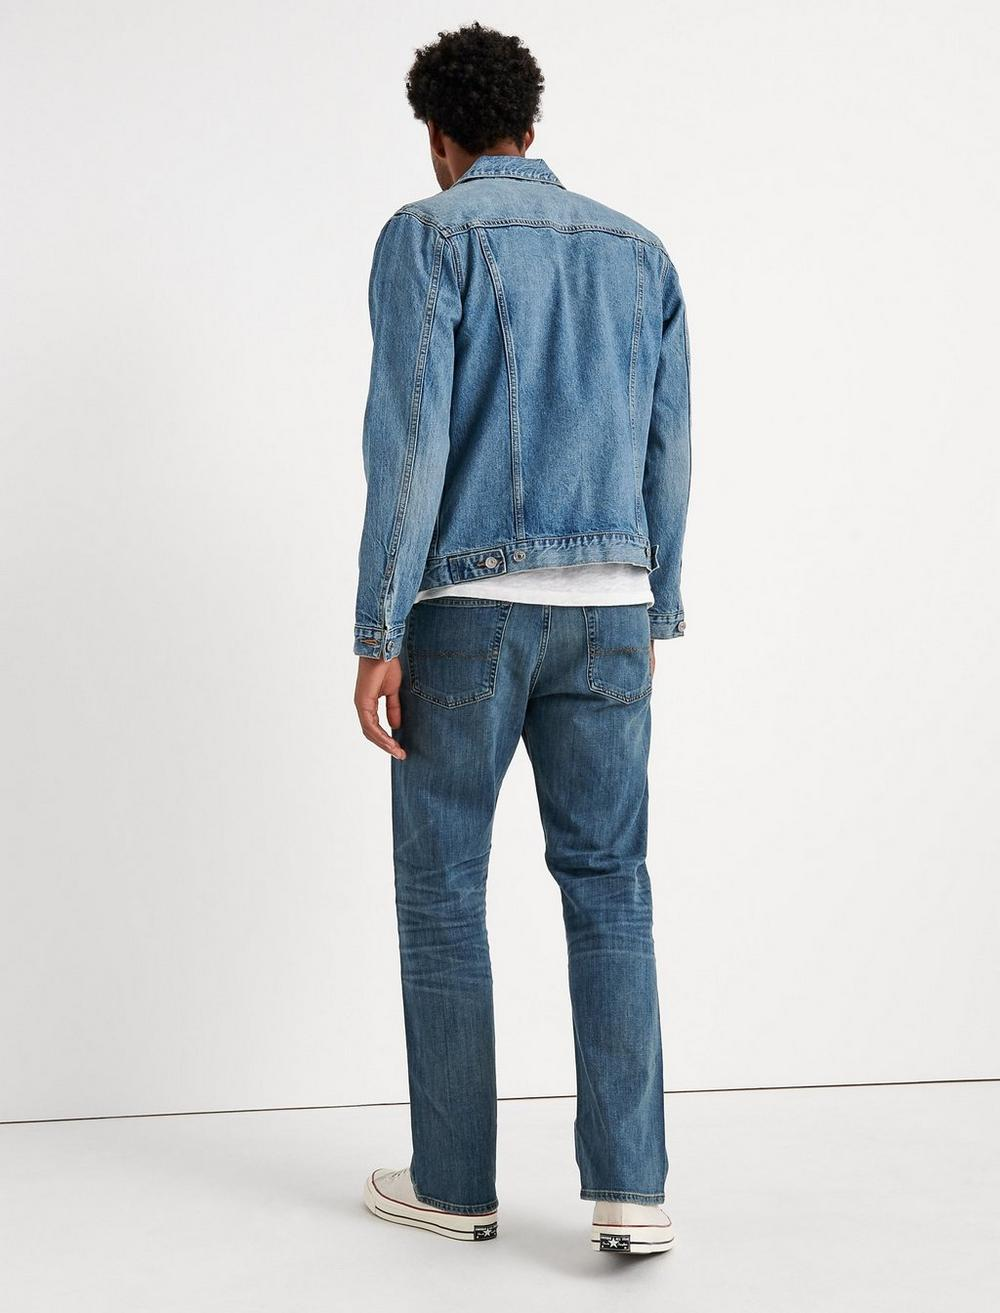 181 RELAXED STRAIGHT JEAN, image 3